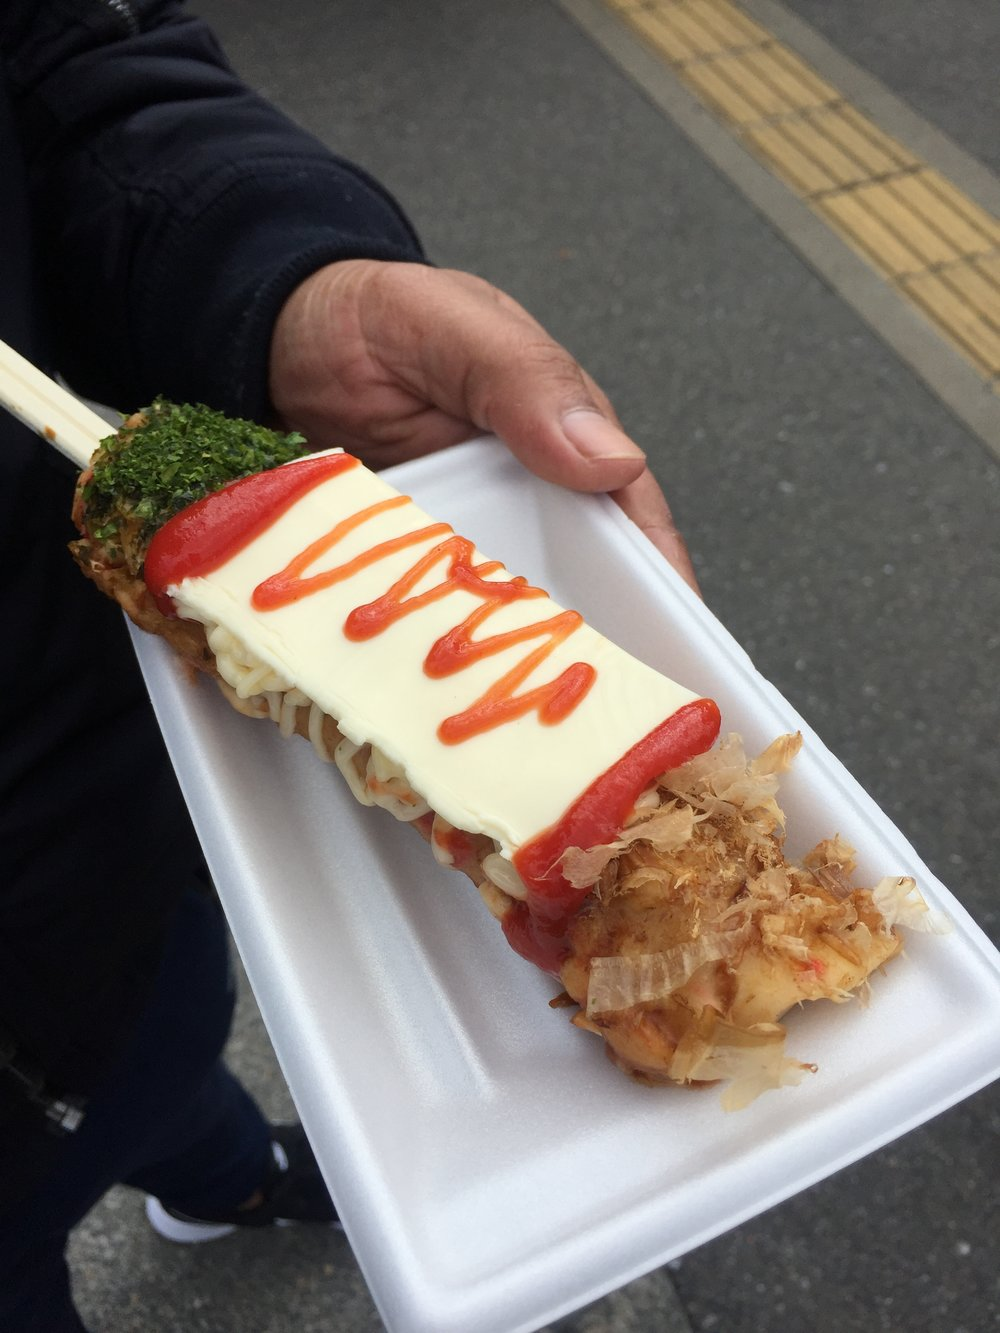 Why fumble with chopsticks when you can have your Okonomiyaki on a stick?